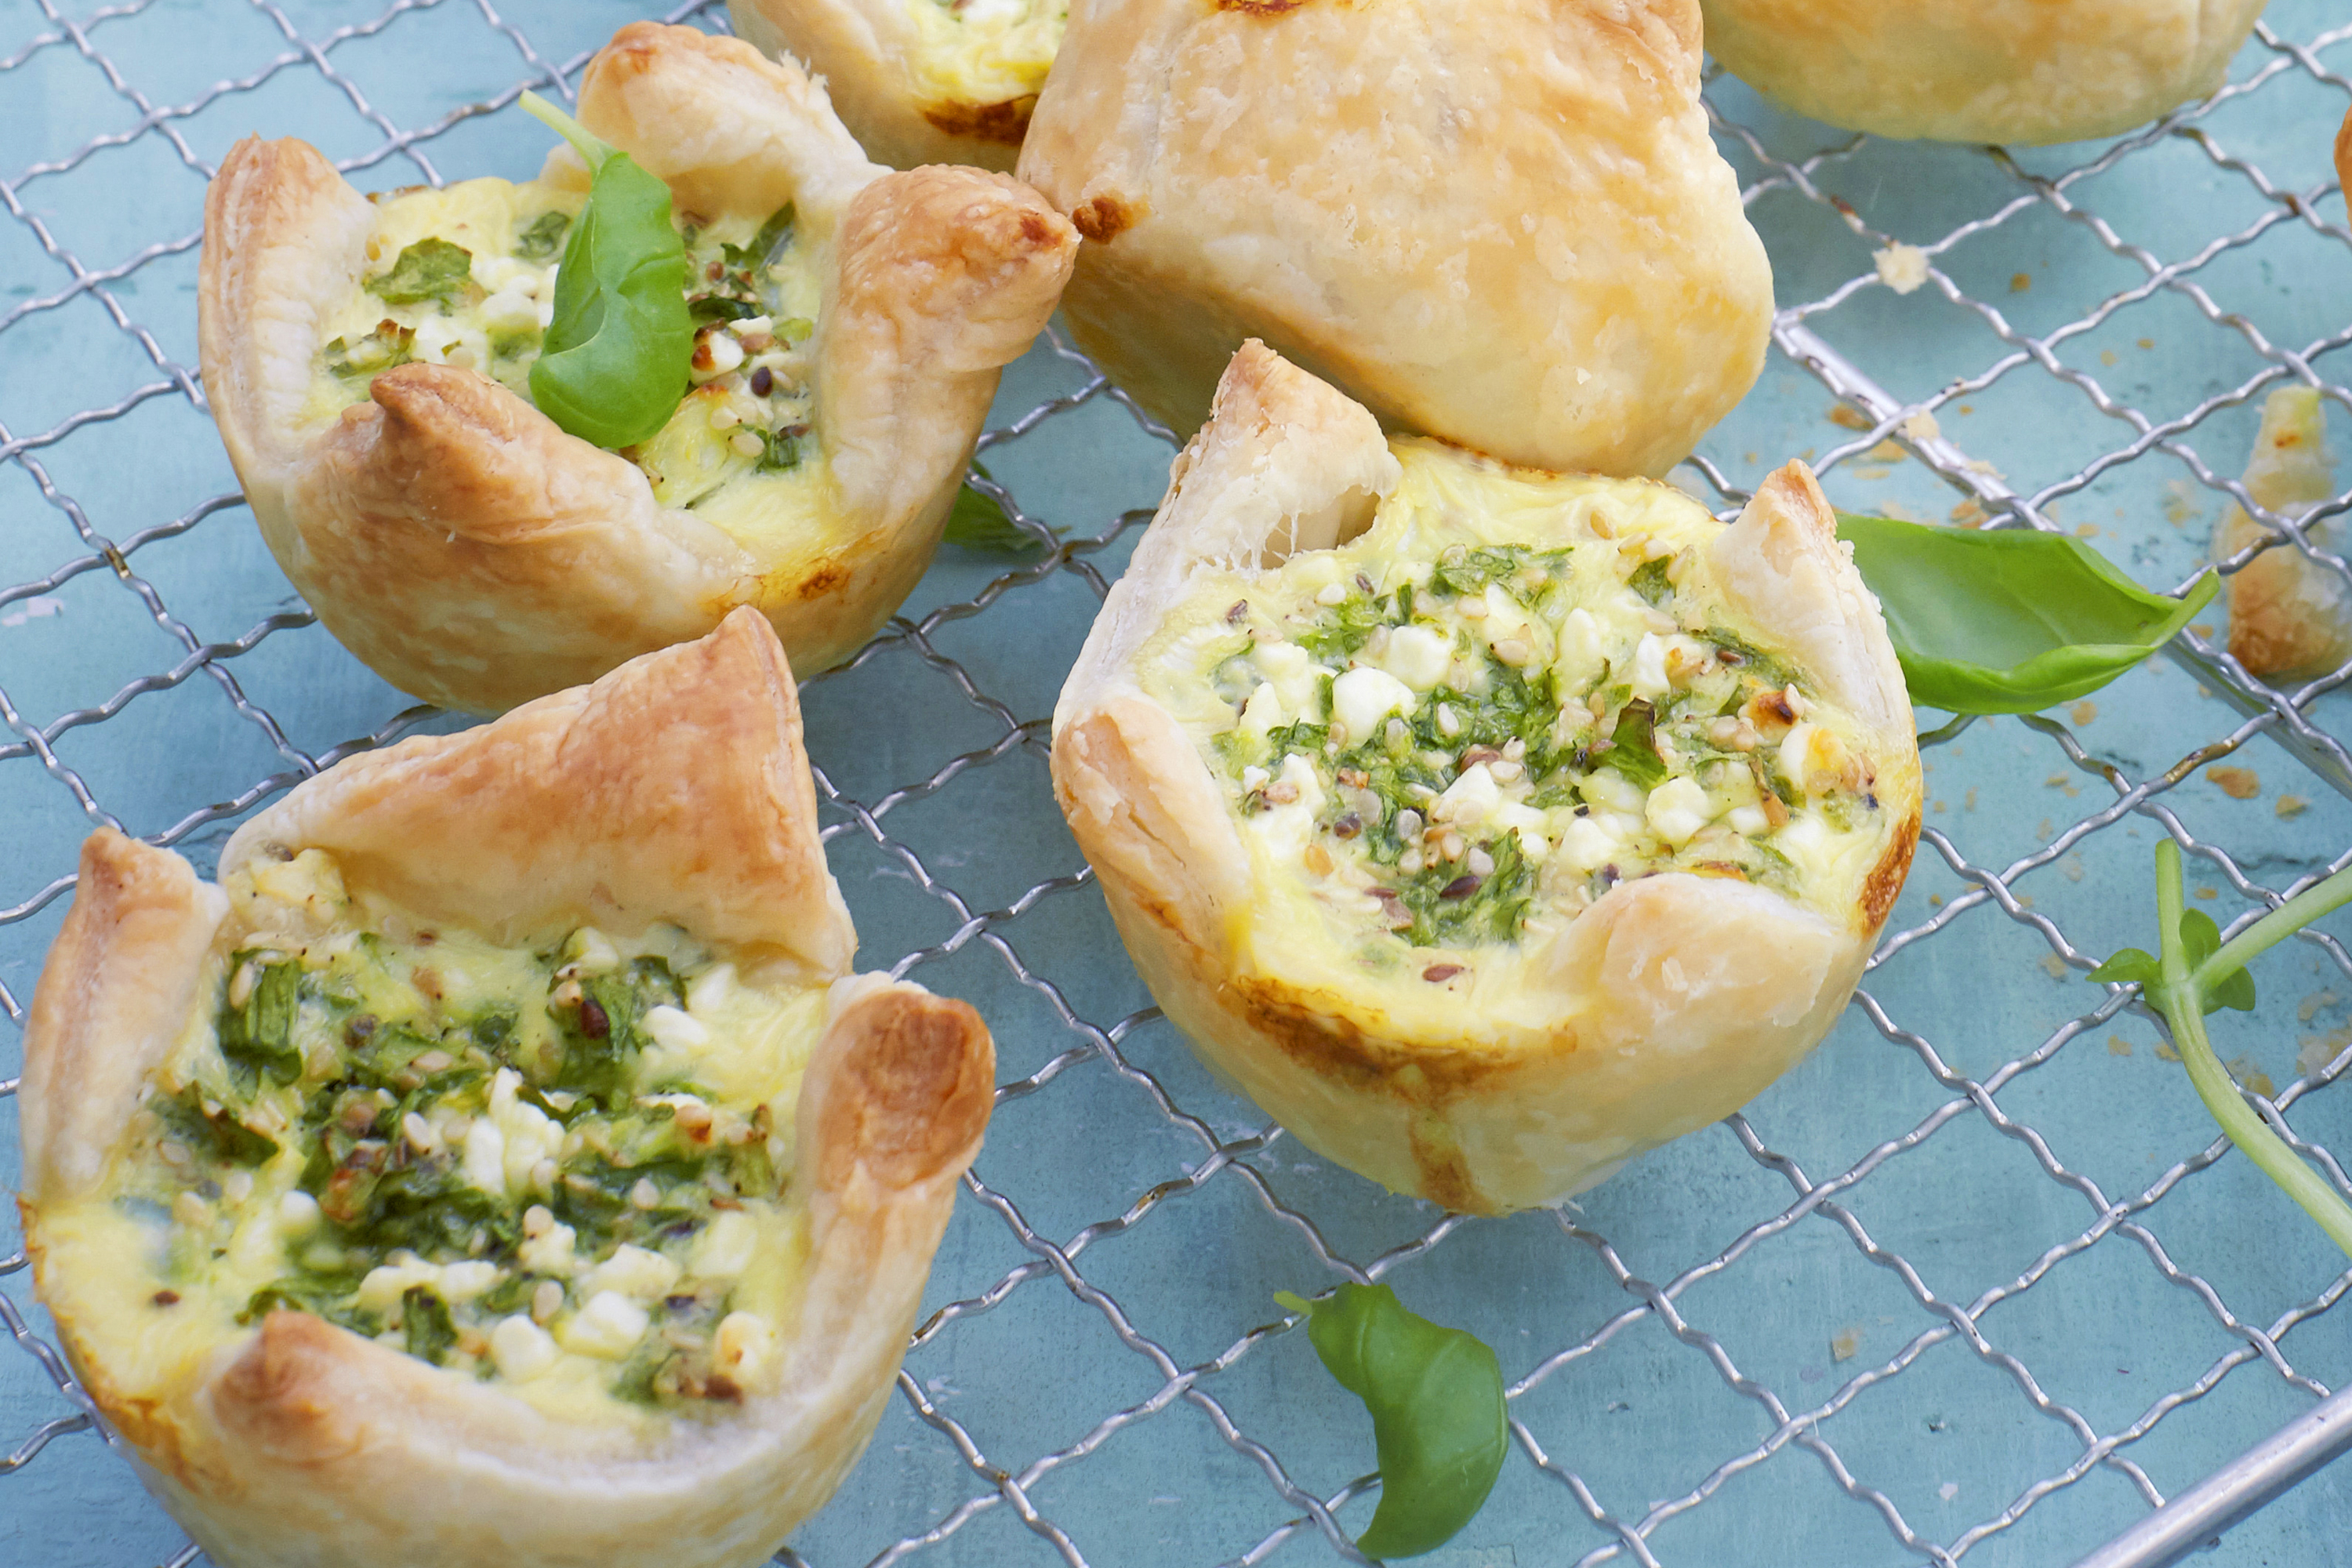 Savoury Puff Pastry Spinach-and-Pesto Bites Image 1